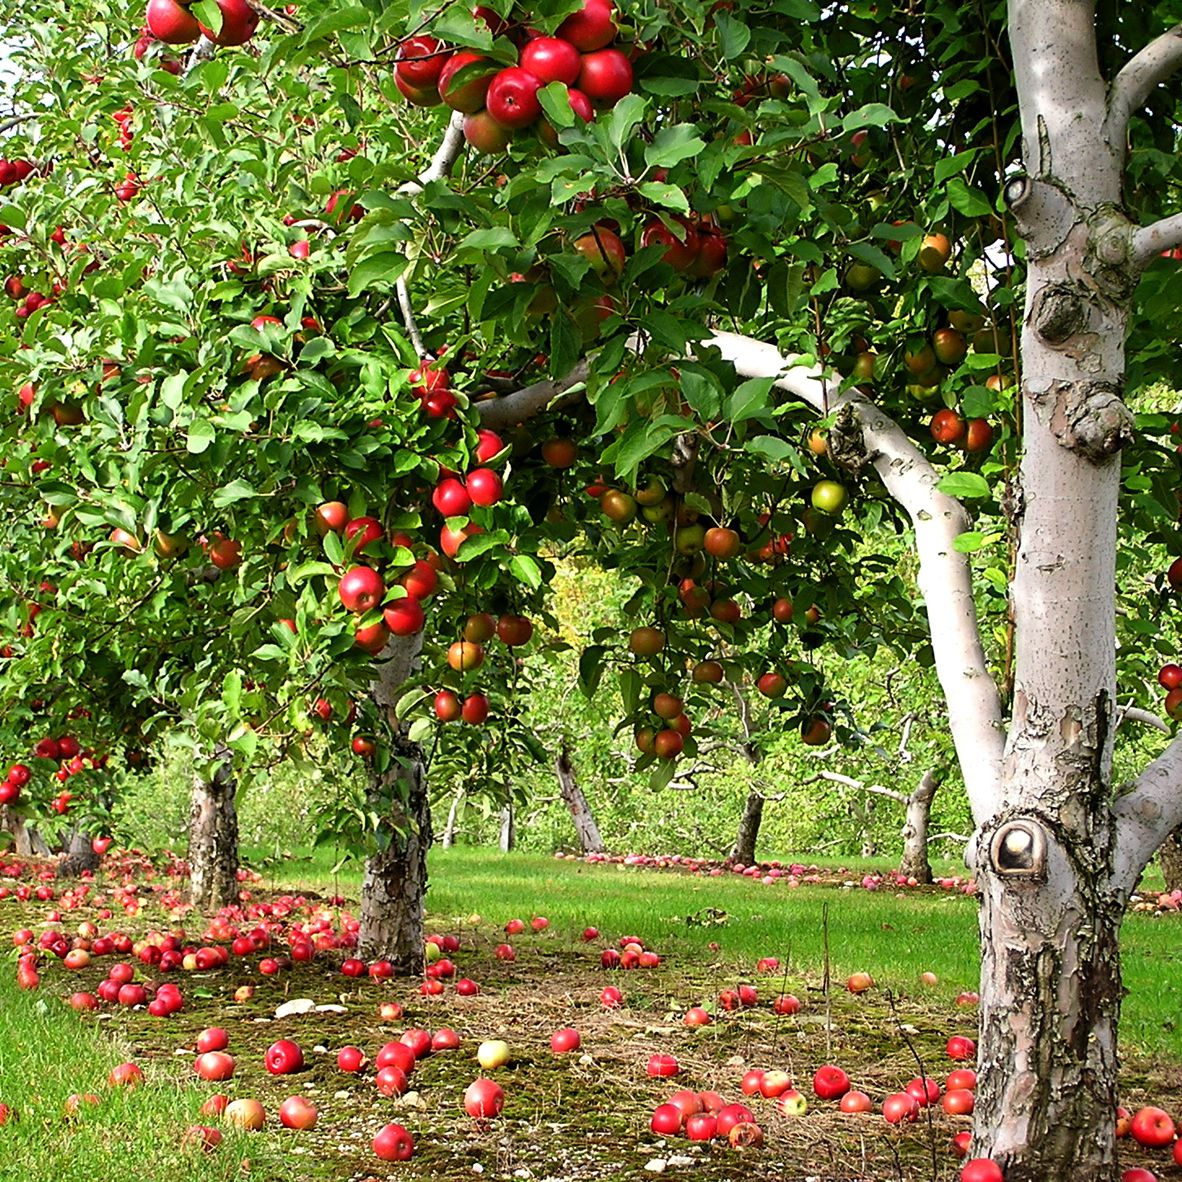 The Top 5 Places to Go Apple Picking Near Boston